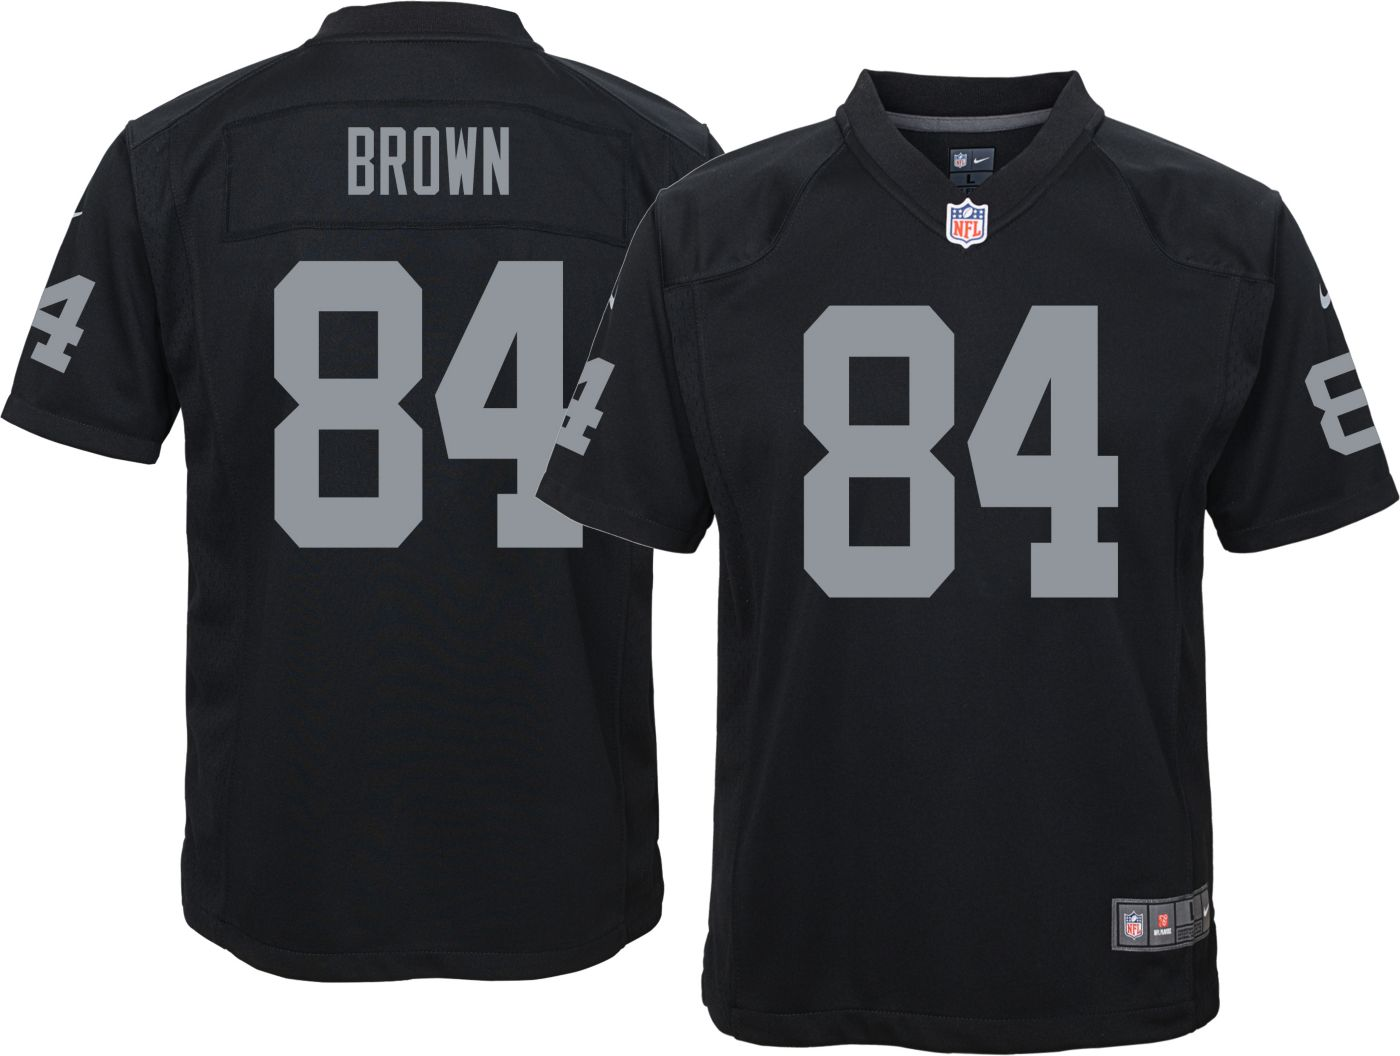 Antonio Brown #84 Nike Youth Oakland Raiders Home Game Jersey